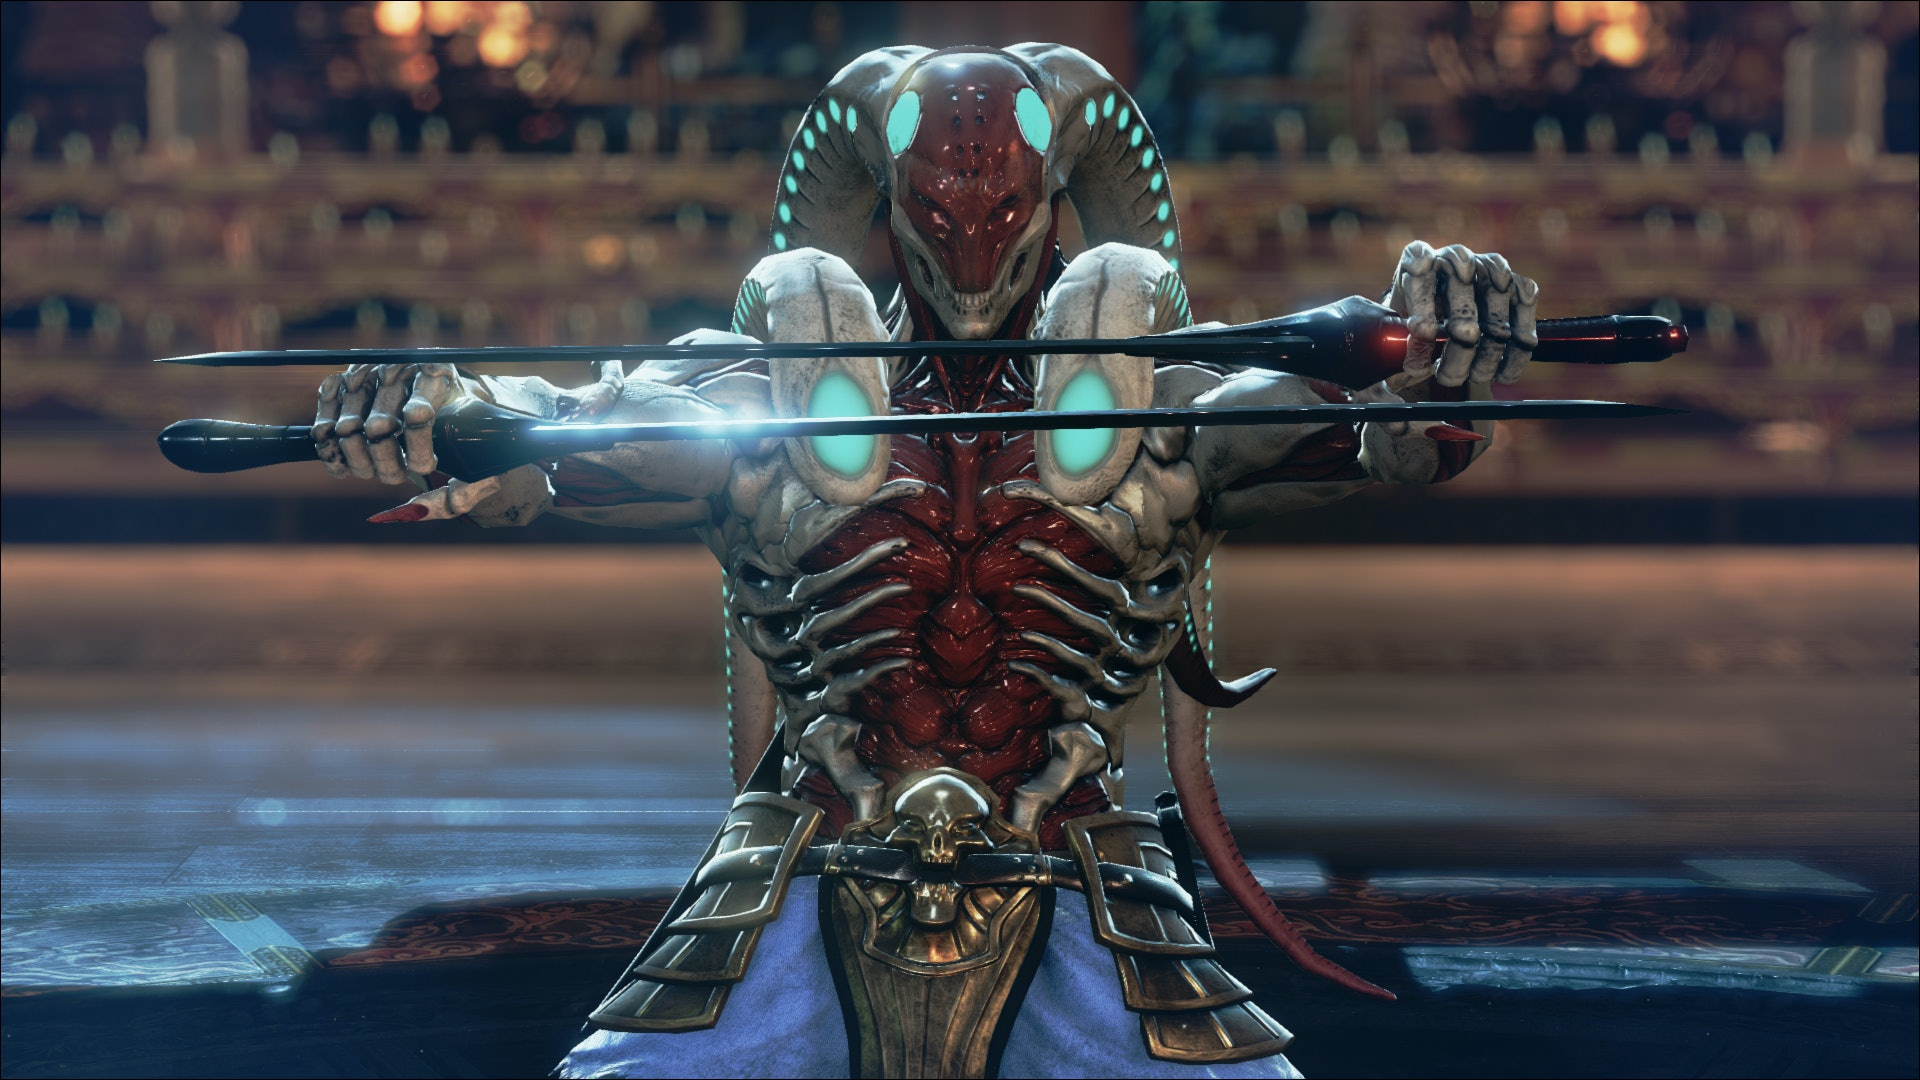 Tekken 7 Yoshimitsu Combos Learn The Best Rage Arts And Moves Of The Cyborg Ninja